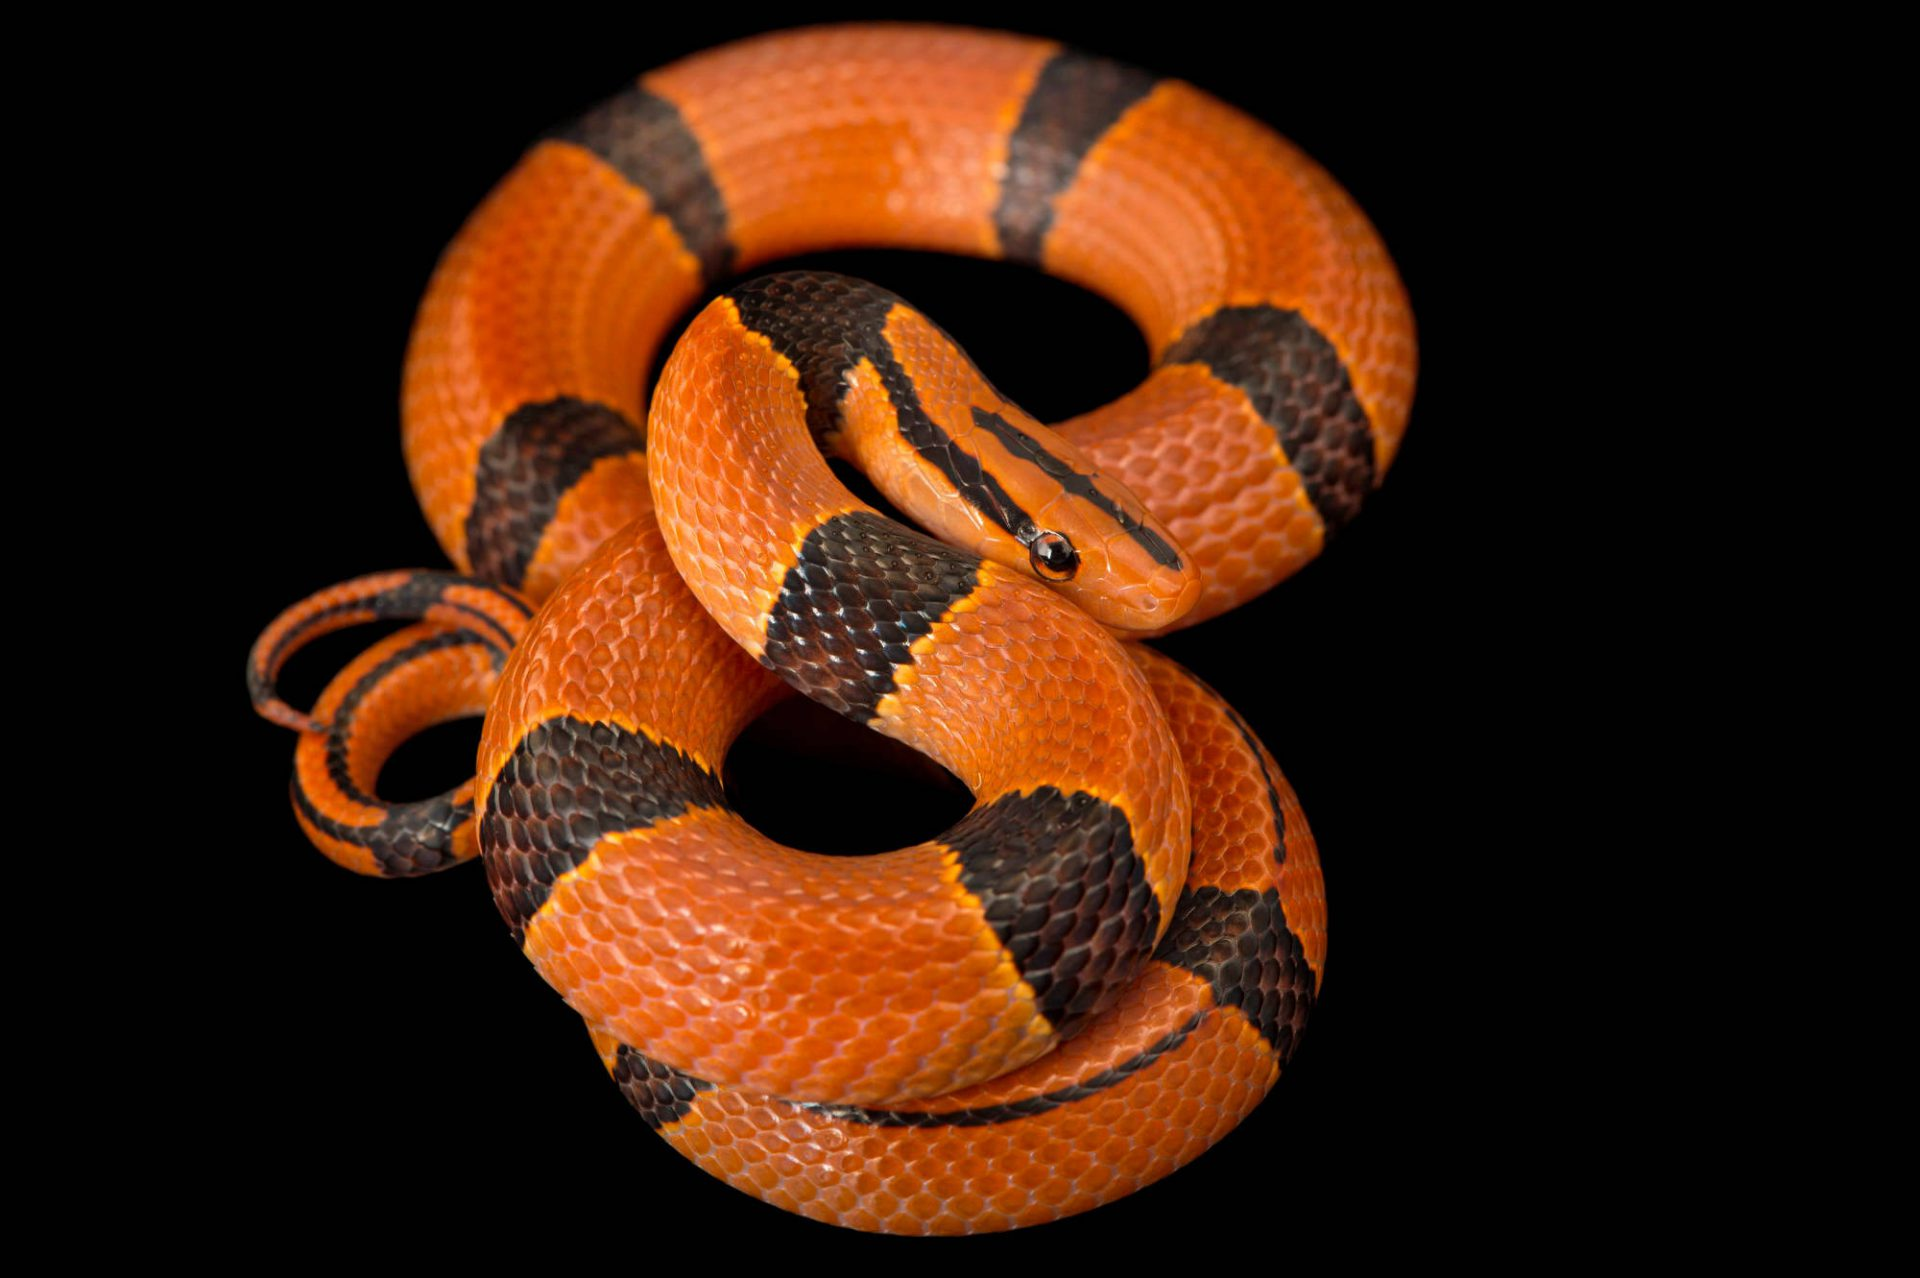 Photo: Red bamboo snake (Oreocryptophis porphyraceus pulchra) from a private collection.